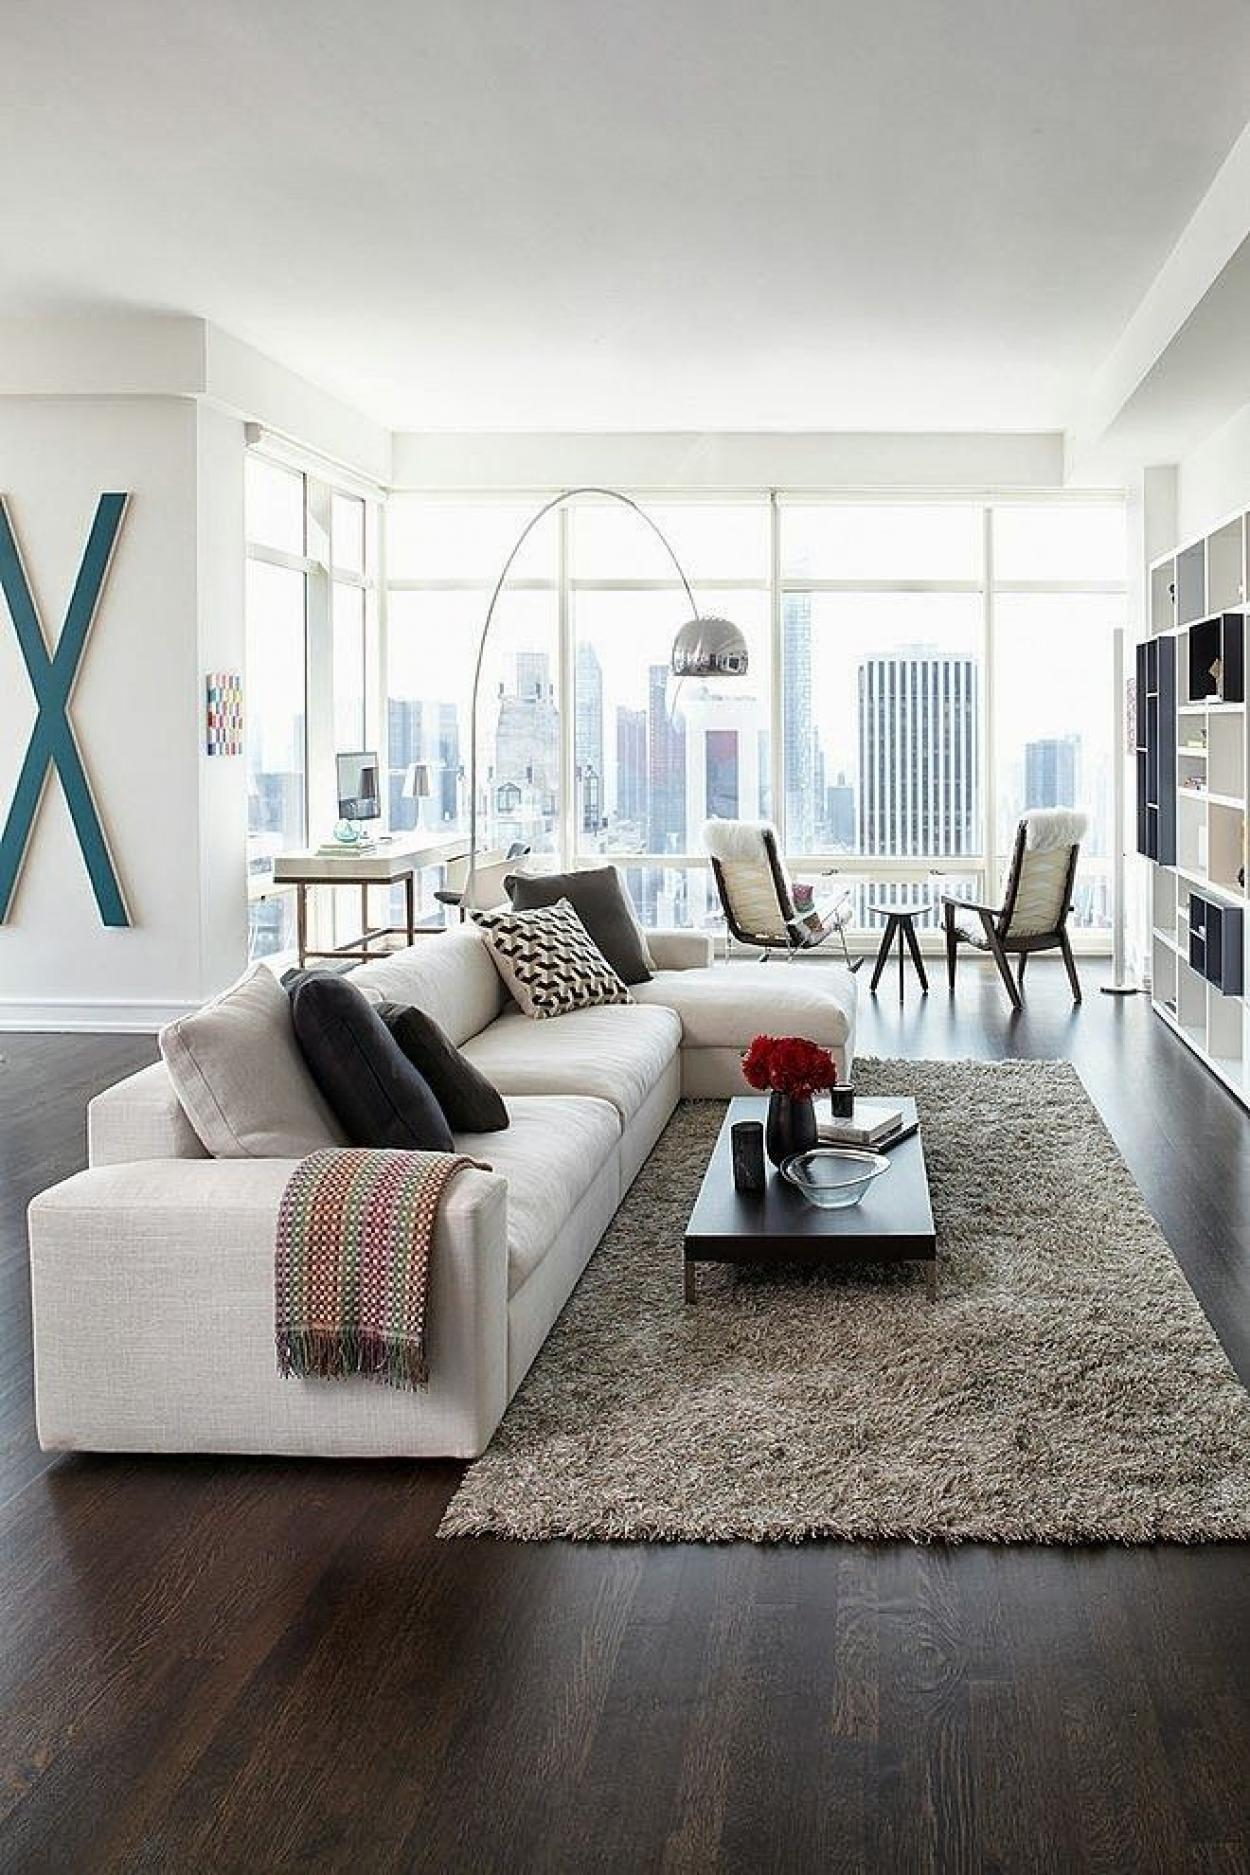 Get The Monochrome Trend With A Silver Floor Lamp! 1